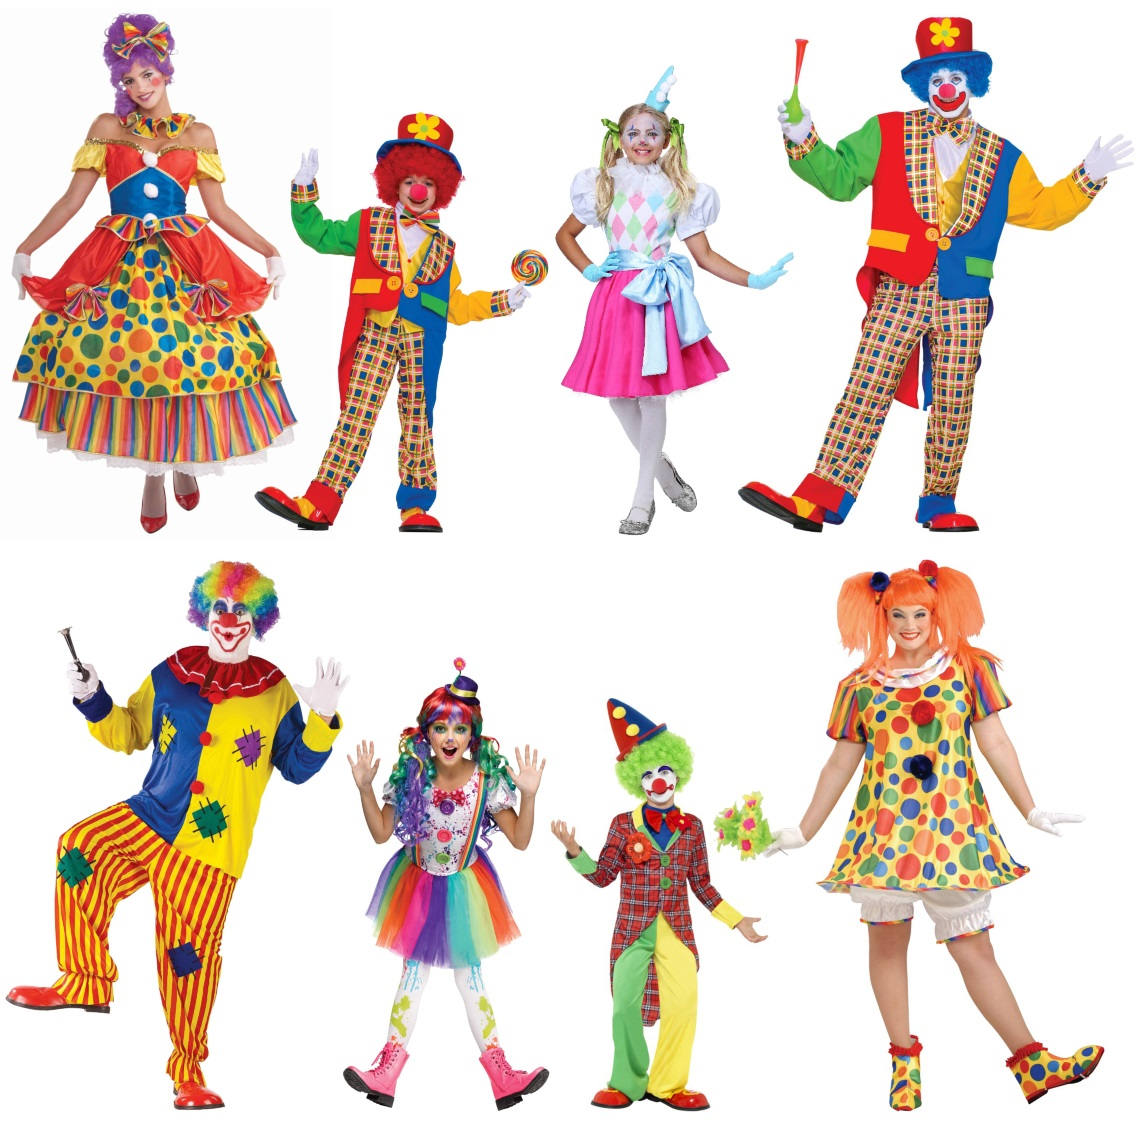 Clown Costumes for Silly People